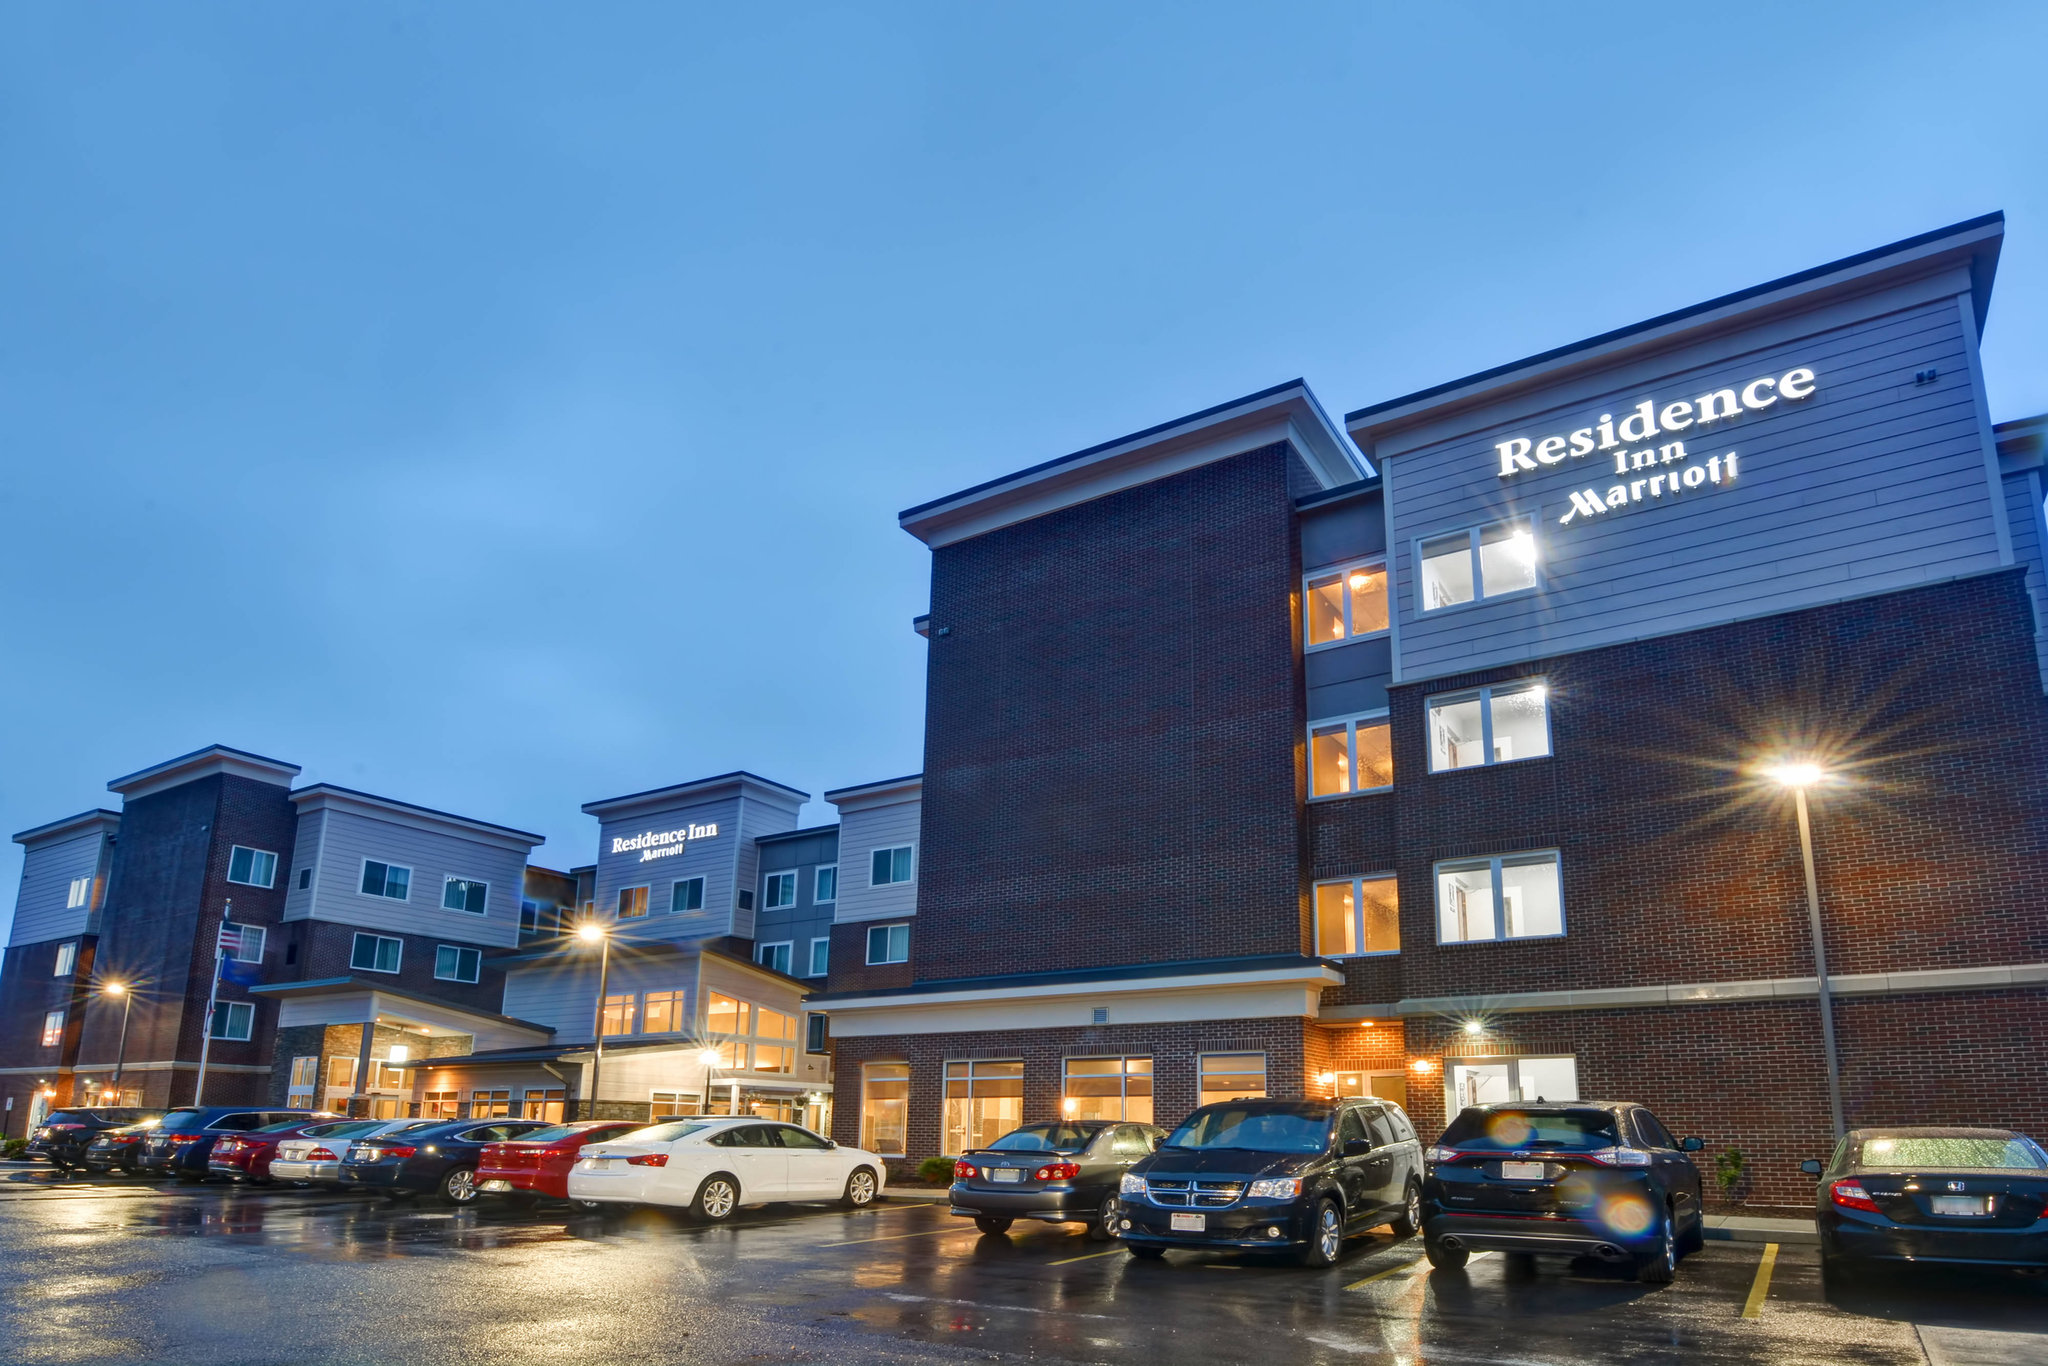 Residence Inn Milwaukee North/Glendale